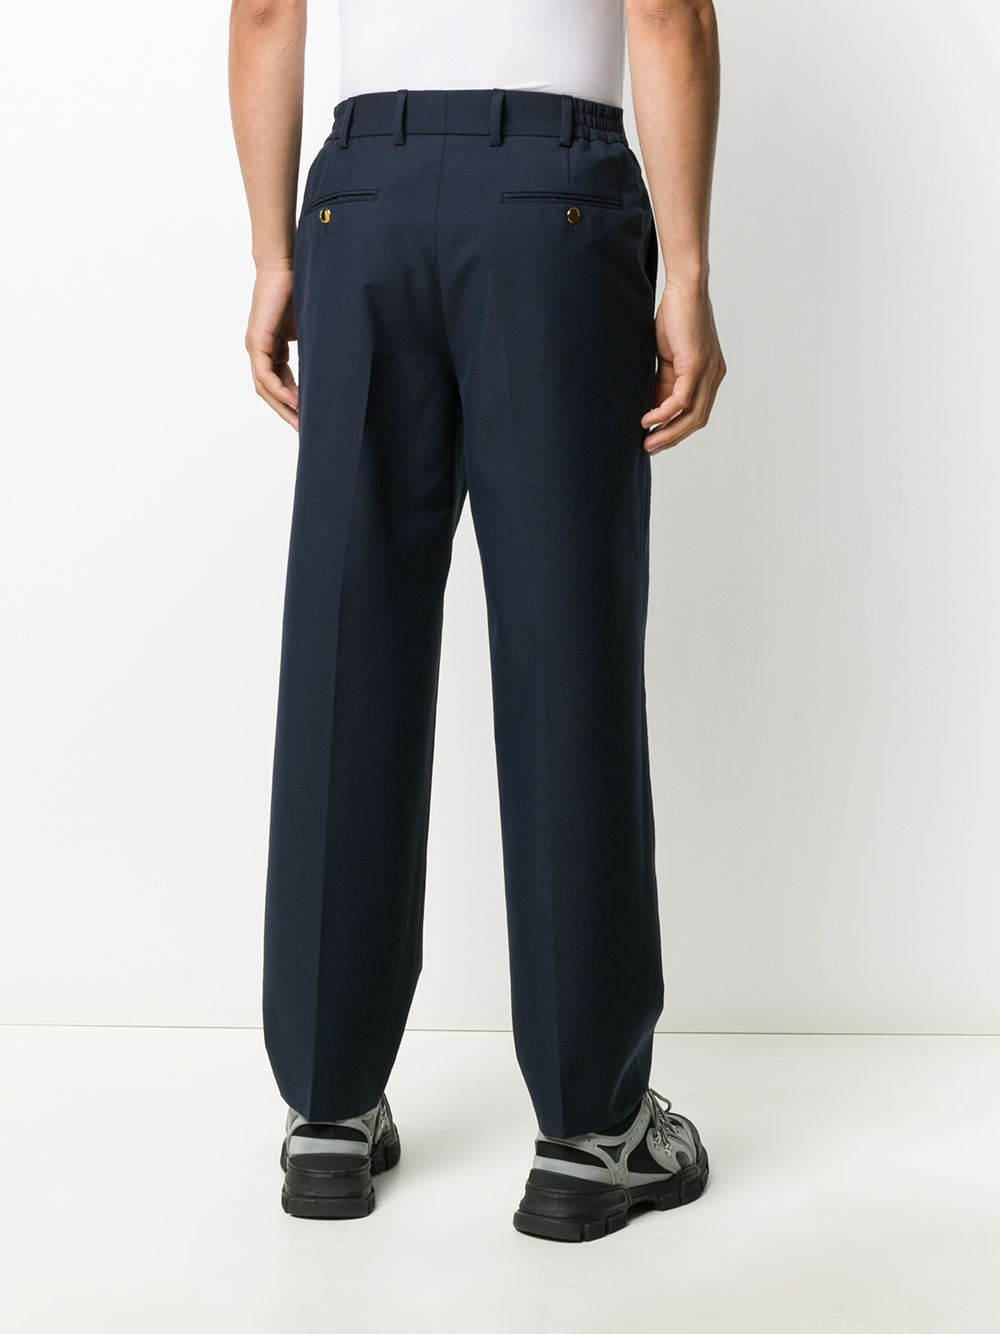 Caspian blue cotton-mohair-wool straight leg tailored trousers featuring GUCCI |  | 630426-ZAC3K4240